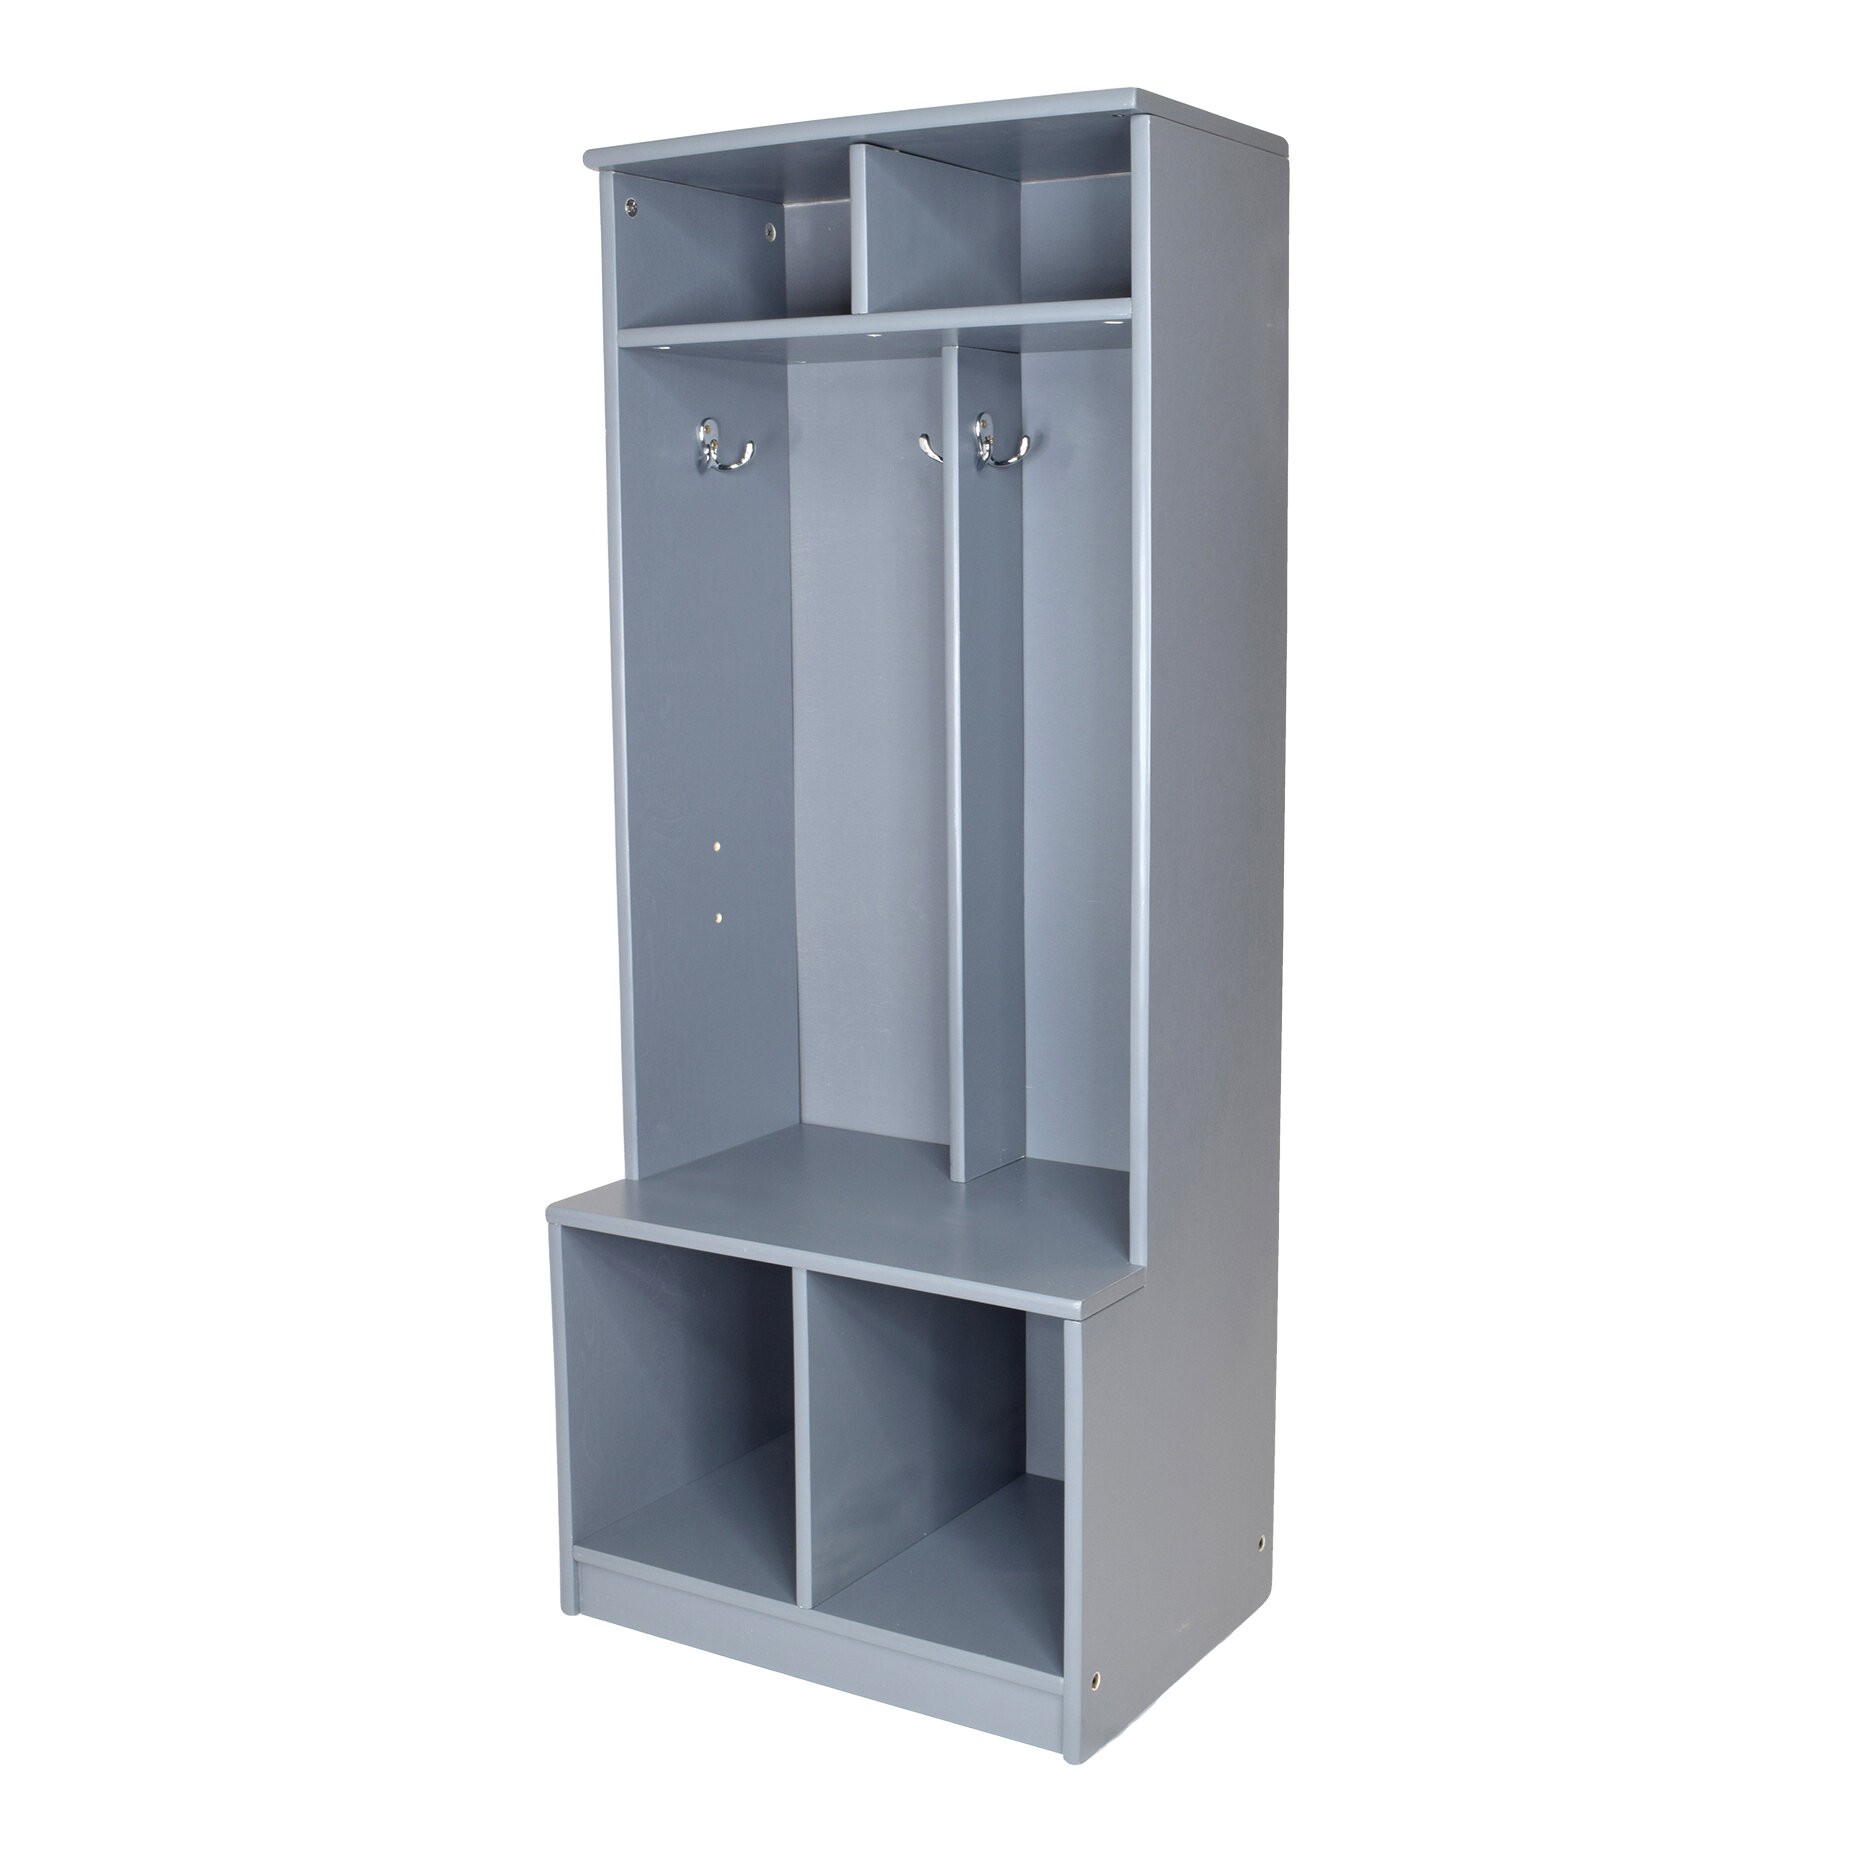 mini metal kids of with school sale full furniture gallery buy storage wall rooms bedrooms cabinet perfect lockers bedroom size locker type cheap for sports